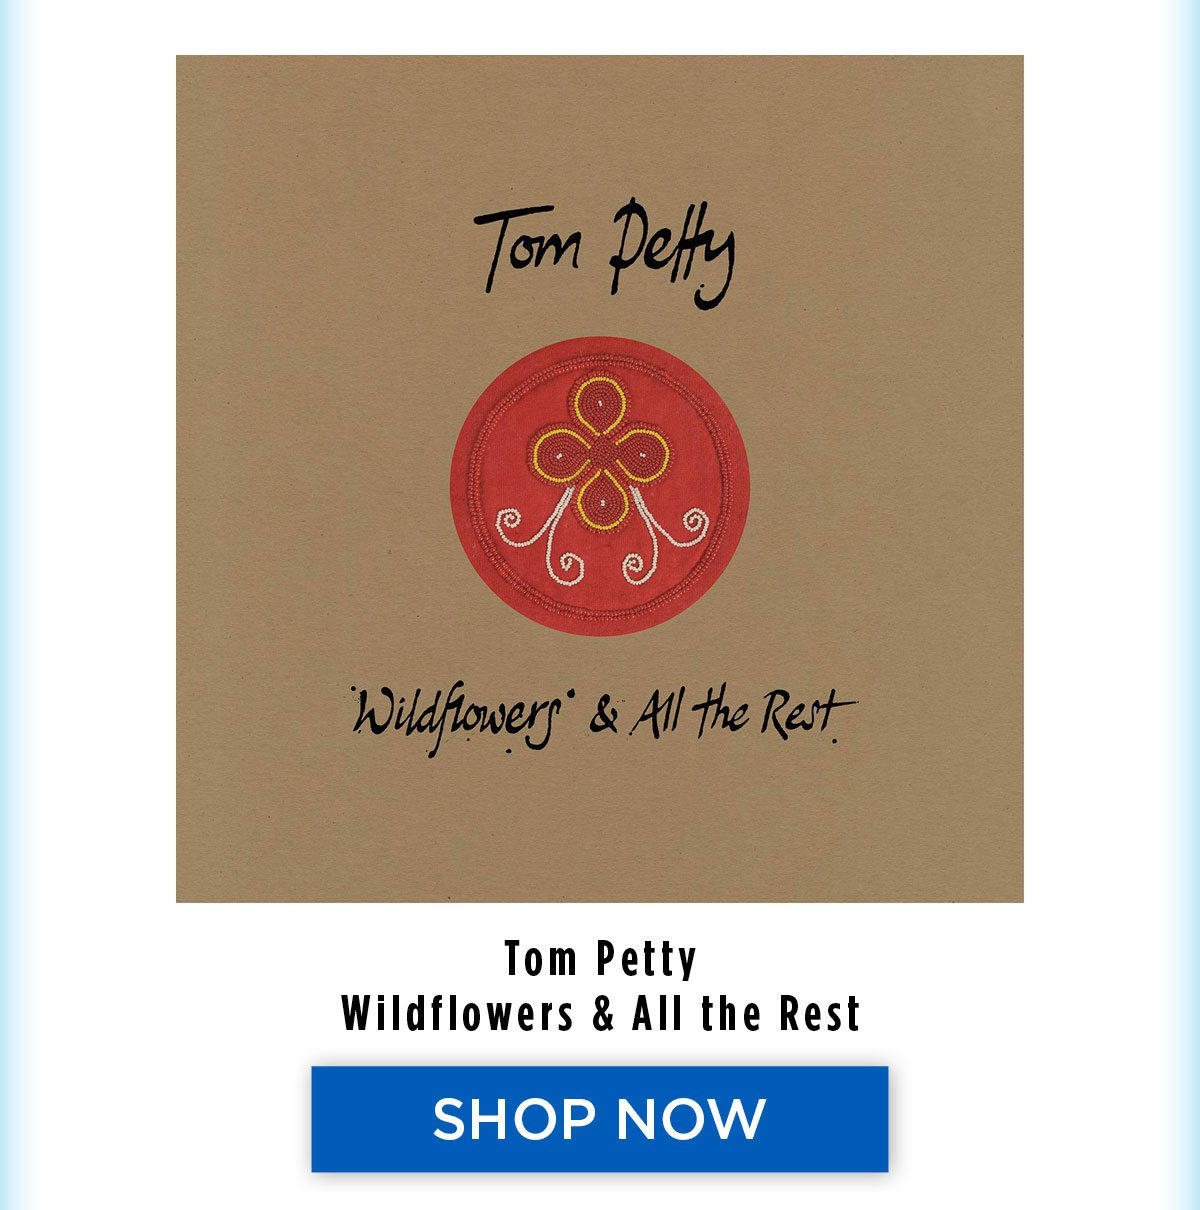 Tom Petty - Wild Flowers & all the rest